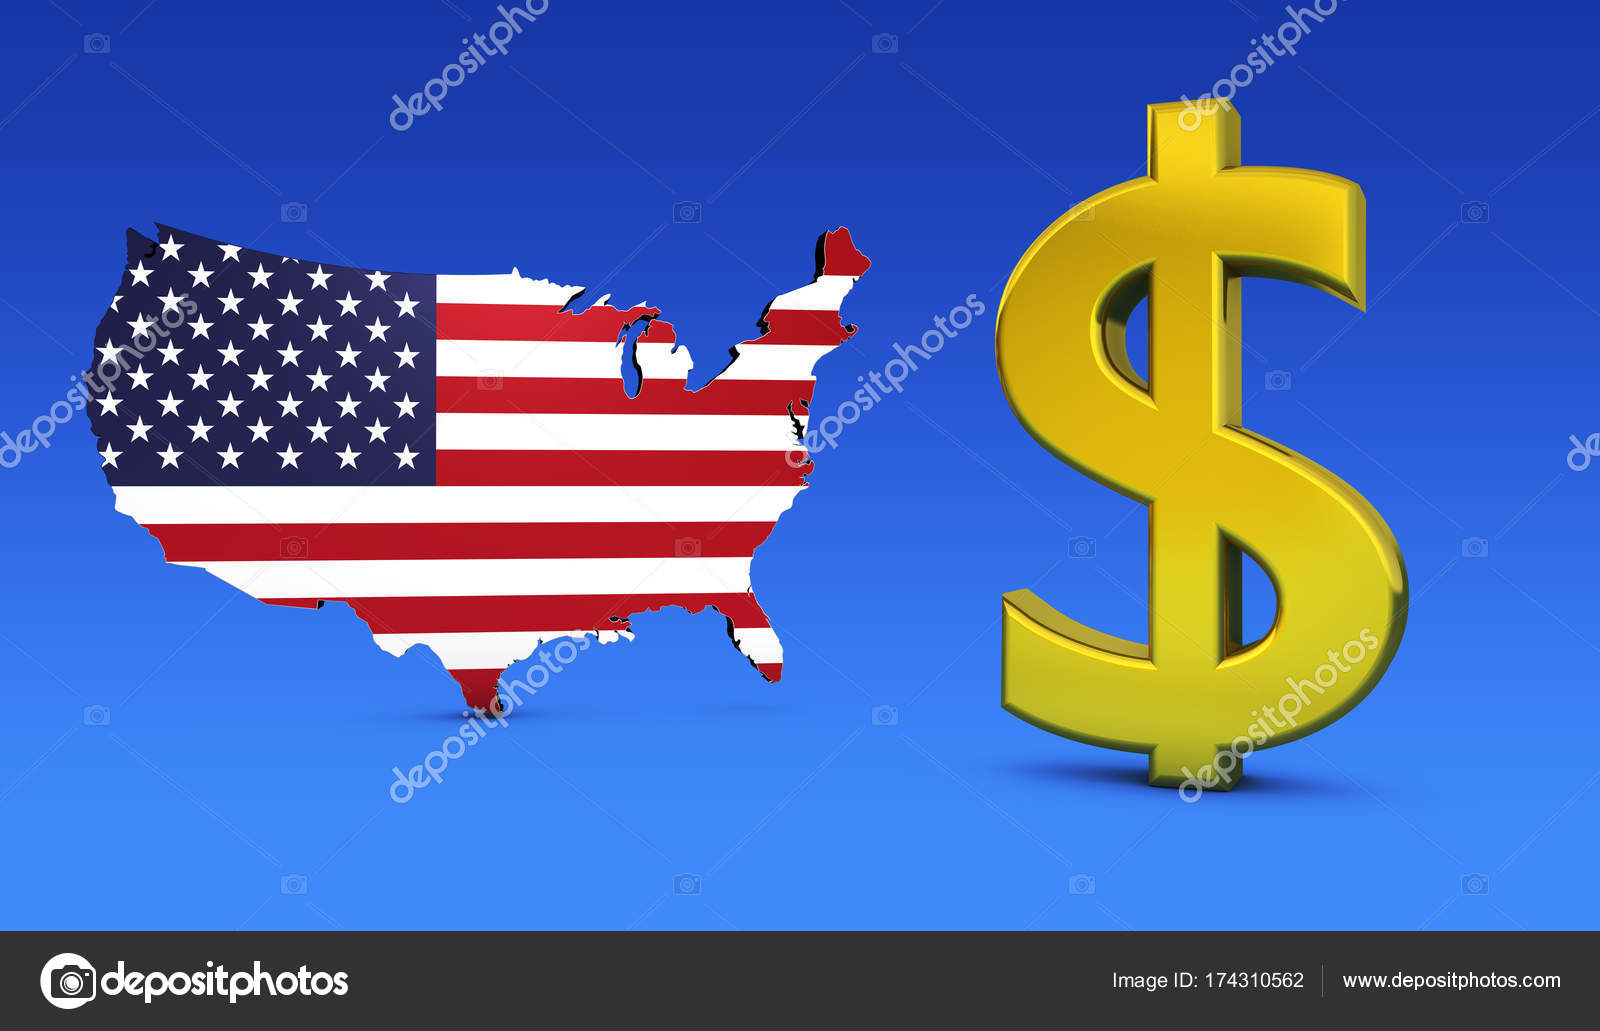 USA Map And Dollar Sign Economy Concept — Stock Photo ... Image Of United States Map Dollars on puerto rico dollar, kelsey dollar, bajan dollar, technology dollar, australia's dollar, singapore dollar, canadian dollar, snowflake dollar, 2014 us dollar, lizzie dollar, laos dollar, new taiwan dollar, us treasury dollar, professional dollar, world trade dollar, ruble dollar, us hundred dollar, argentine dollar, new zealand dollar, botswana dollar,